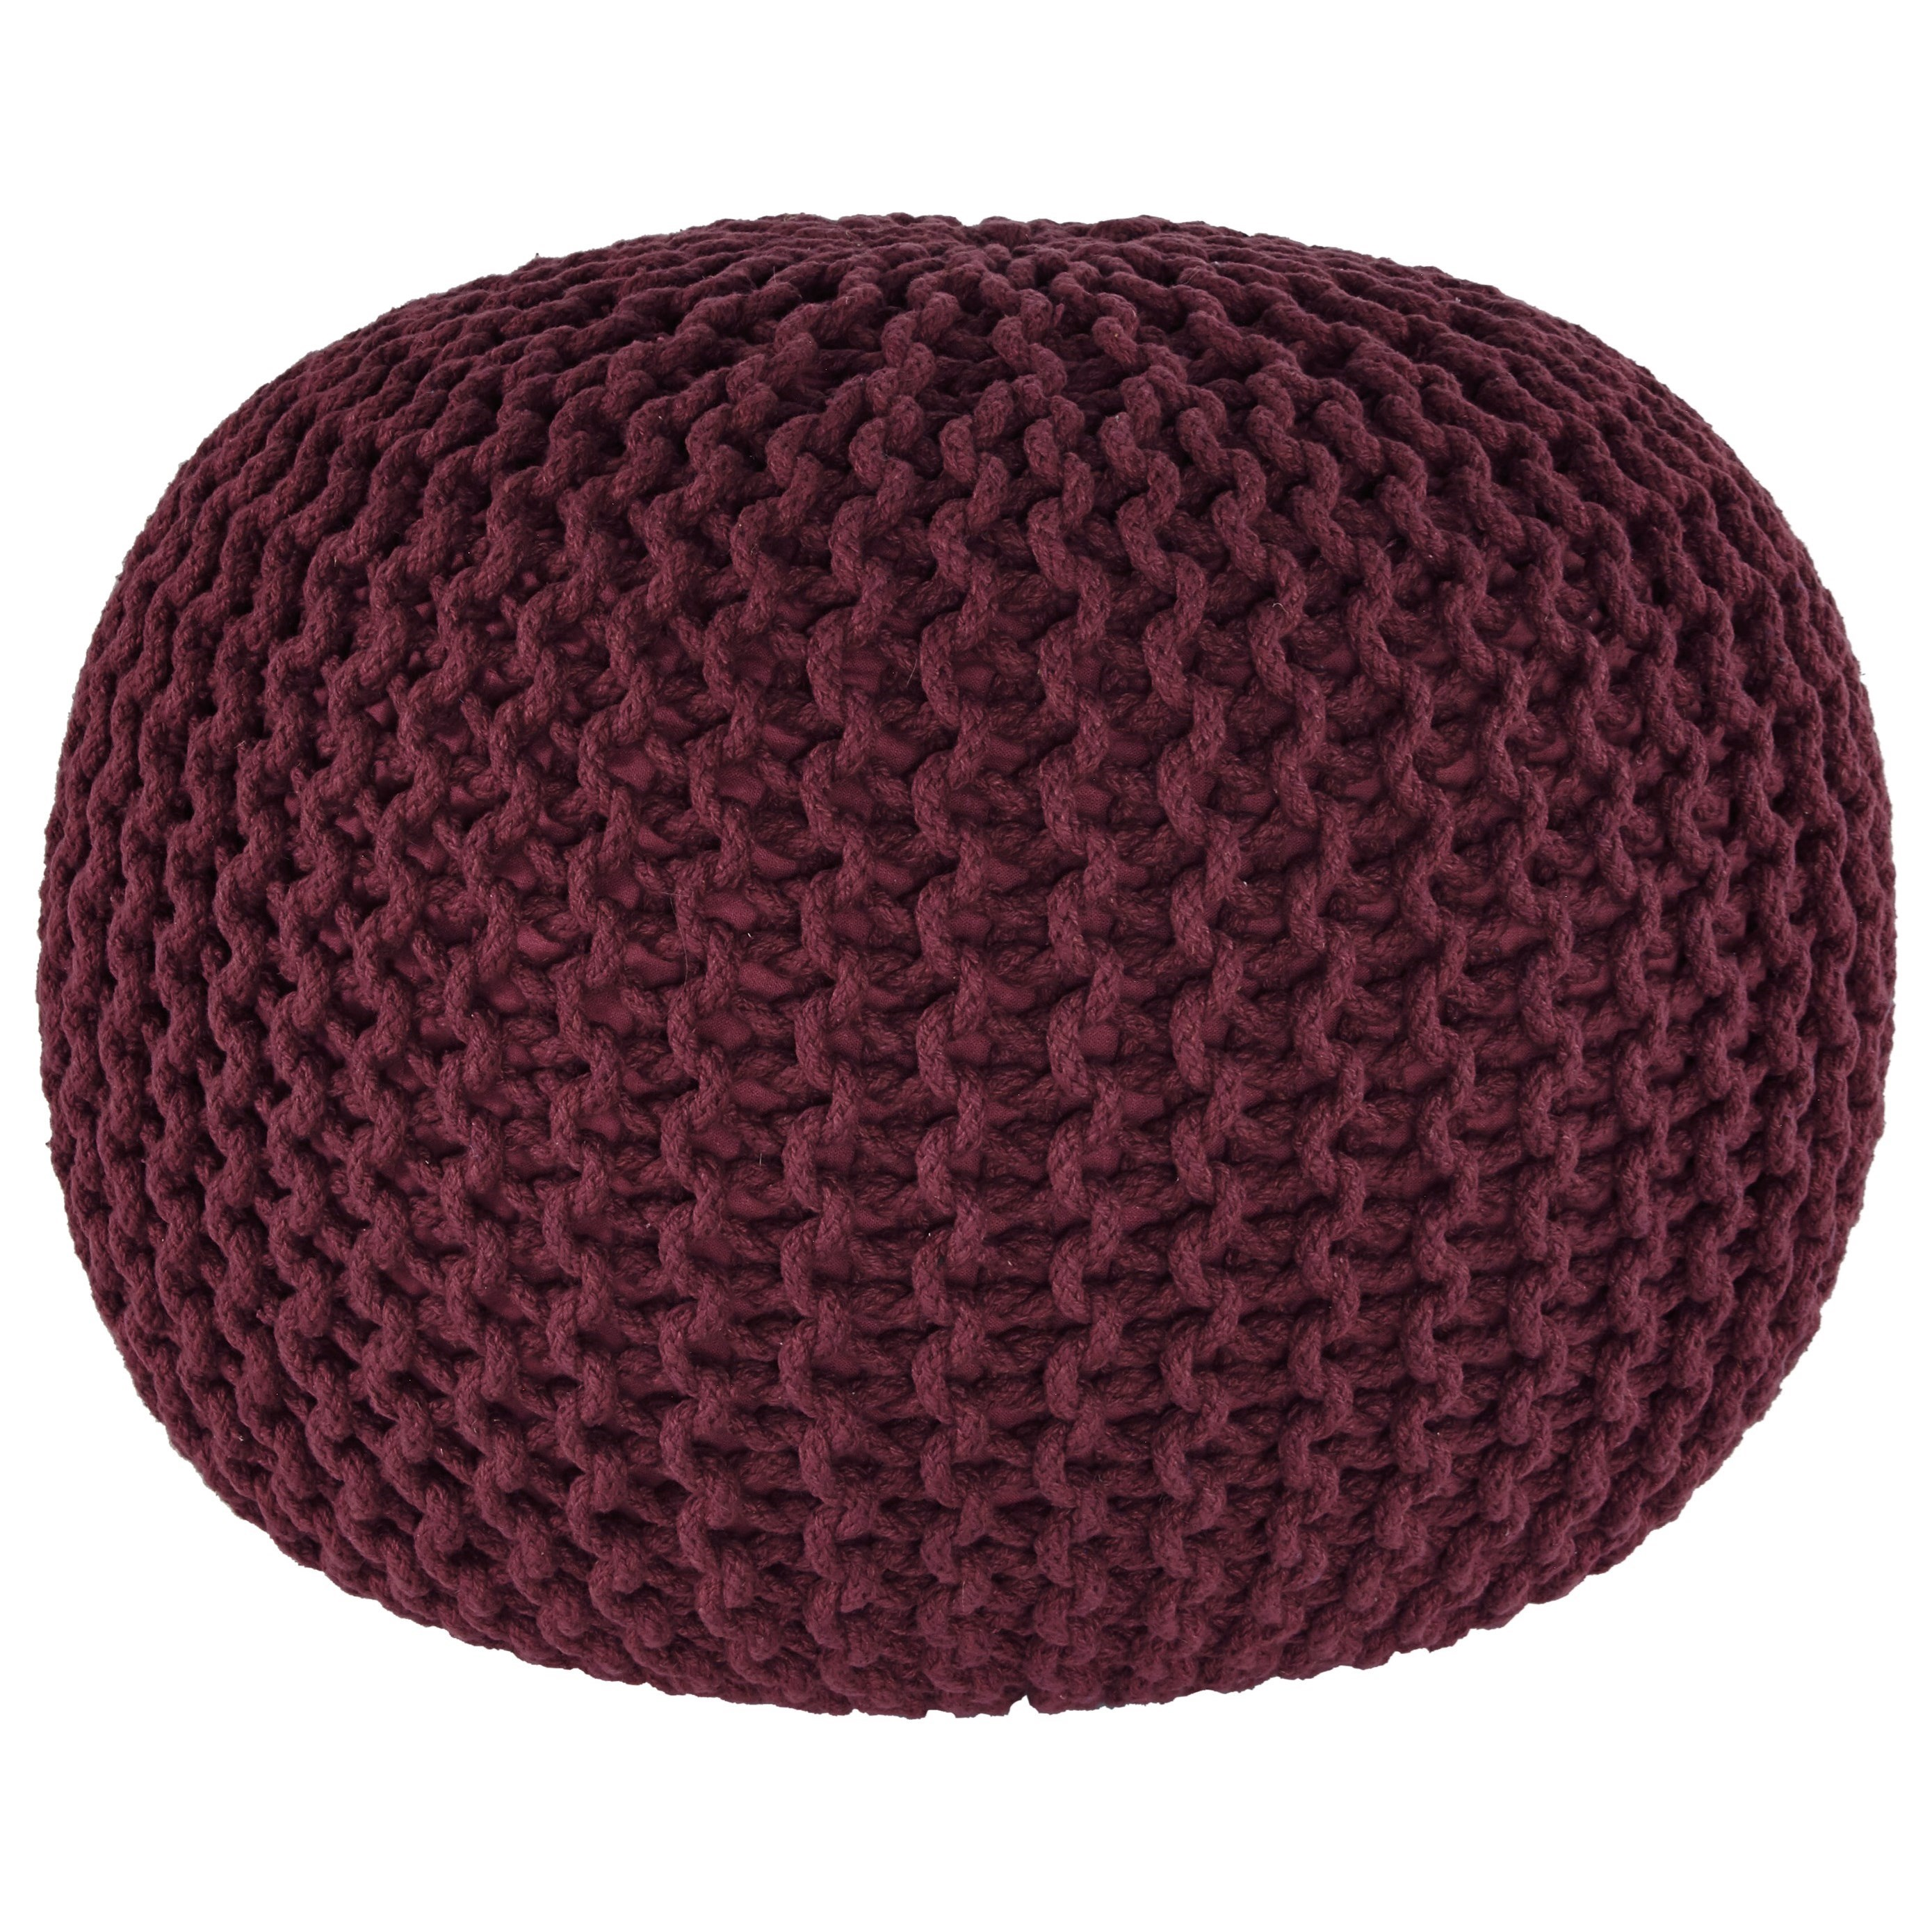 Signature design by ashley poufs nils maroon pouf household furniture p - Pouf marron conforama ...